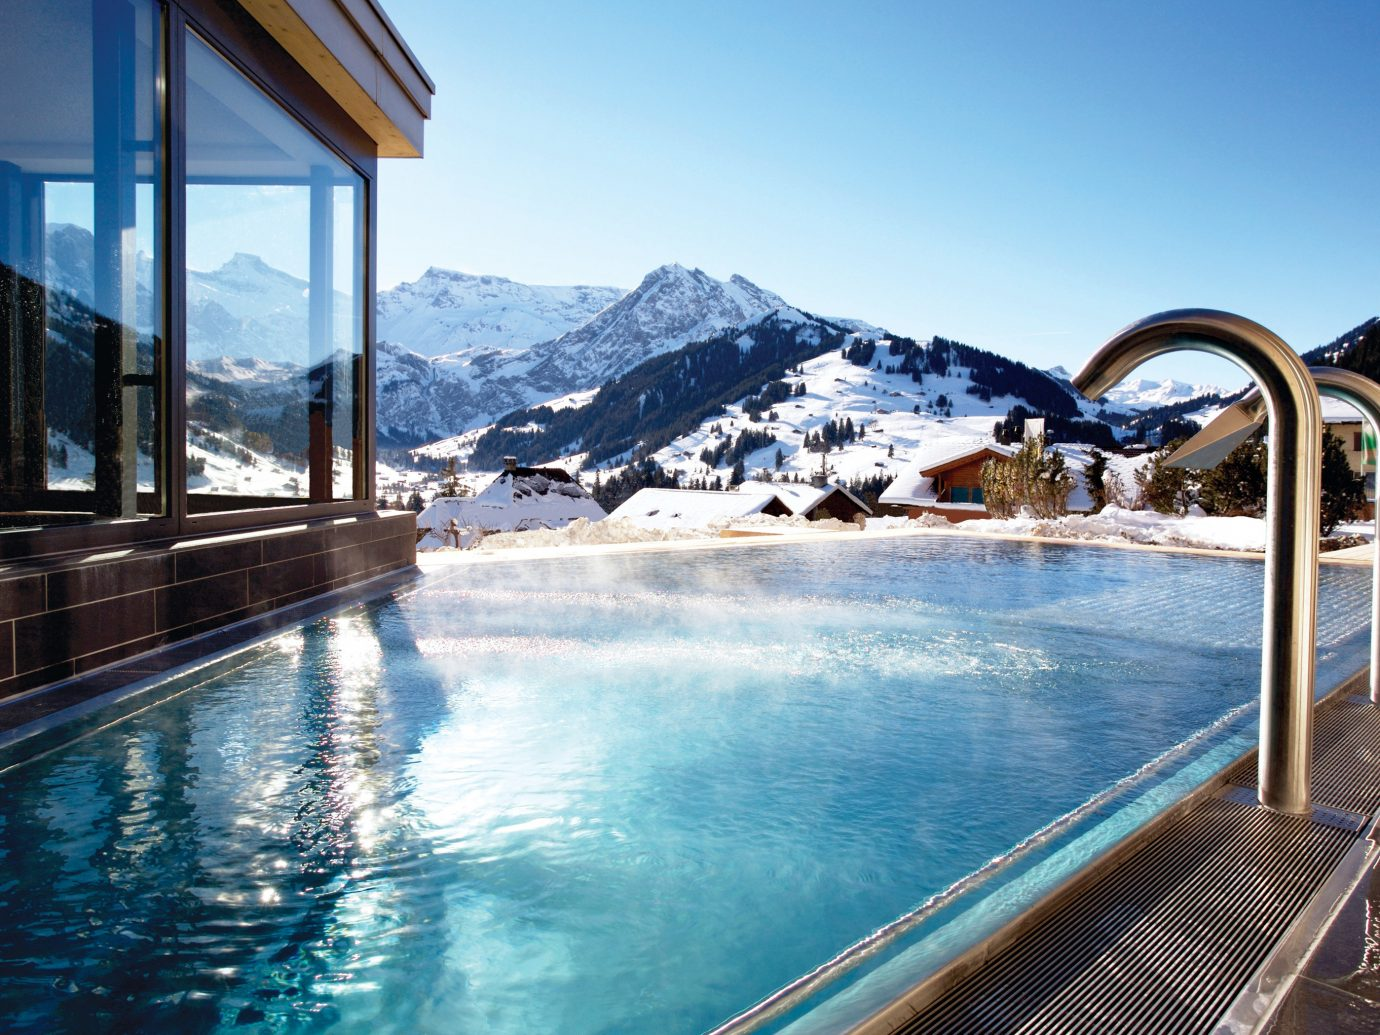 Infinity Pool At The Cabrian Hotel In Switzerland